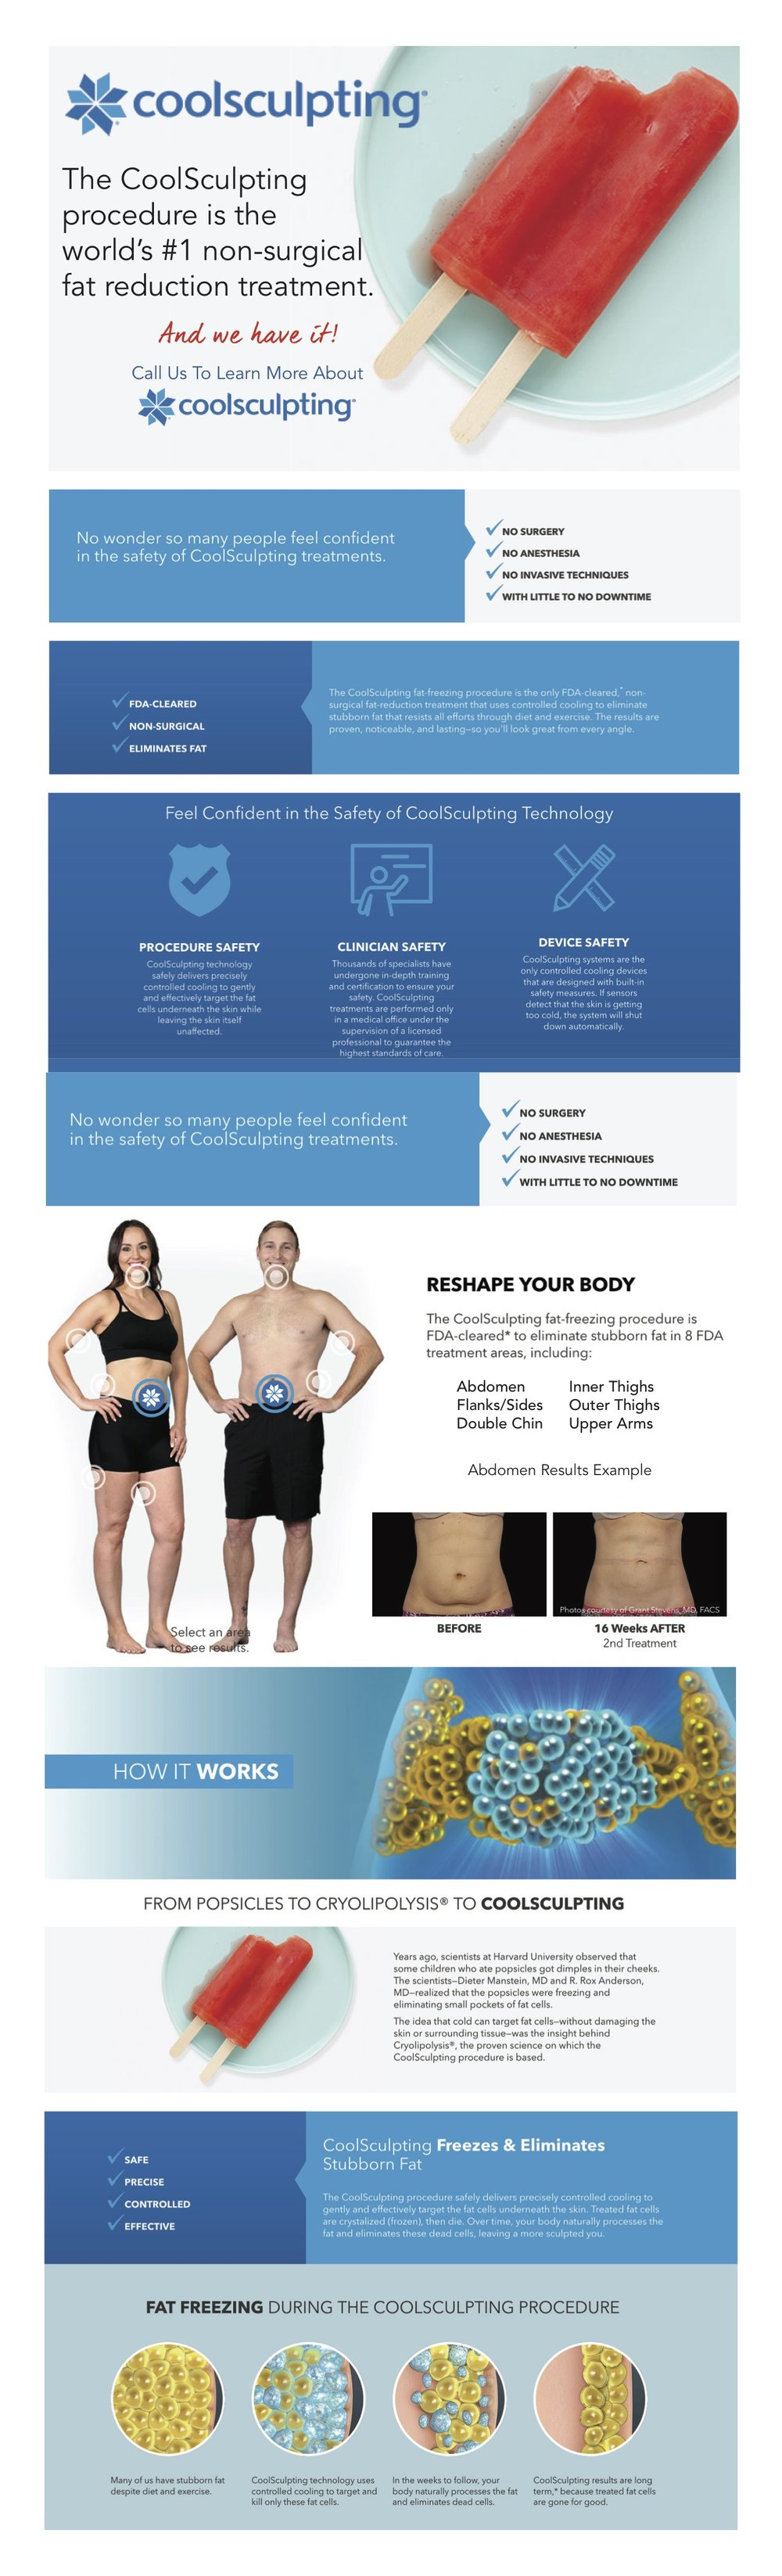 Coolsculpting Web Info.jpg